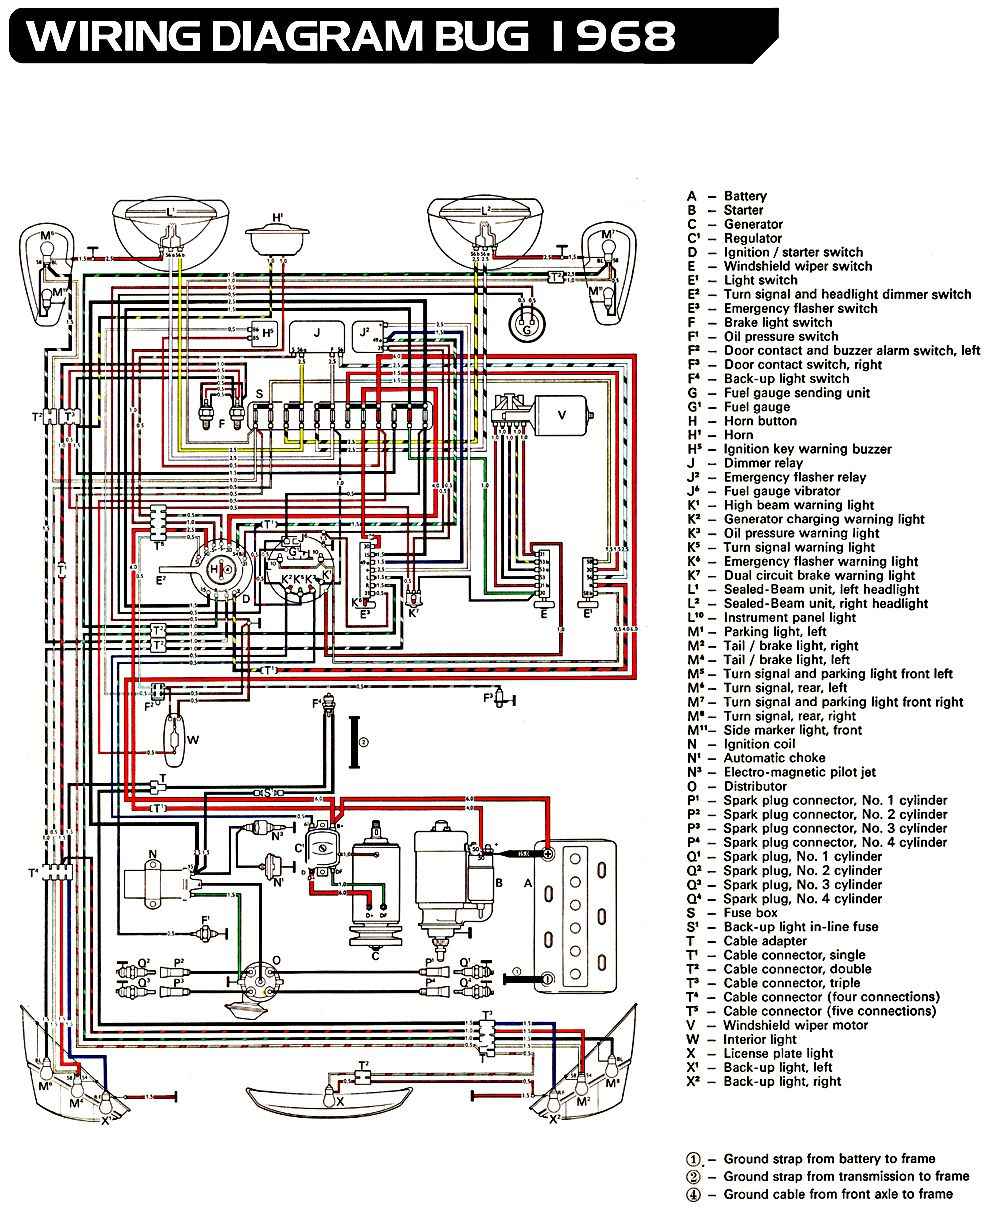 3a1908112d3826270ed5e3be362292bf vw bug ignition wiring diagram 73 vw wiring diagram free 68 VW Wiring Diagram at eliteediting.co